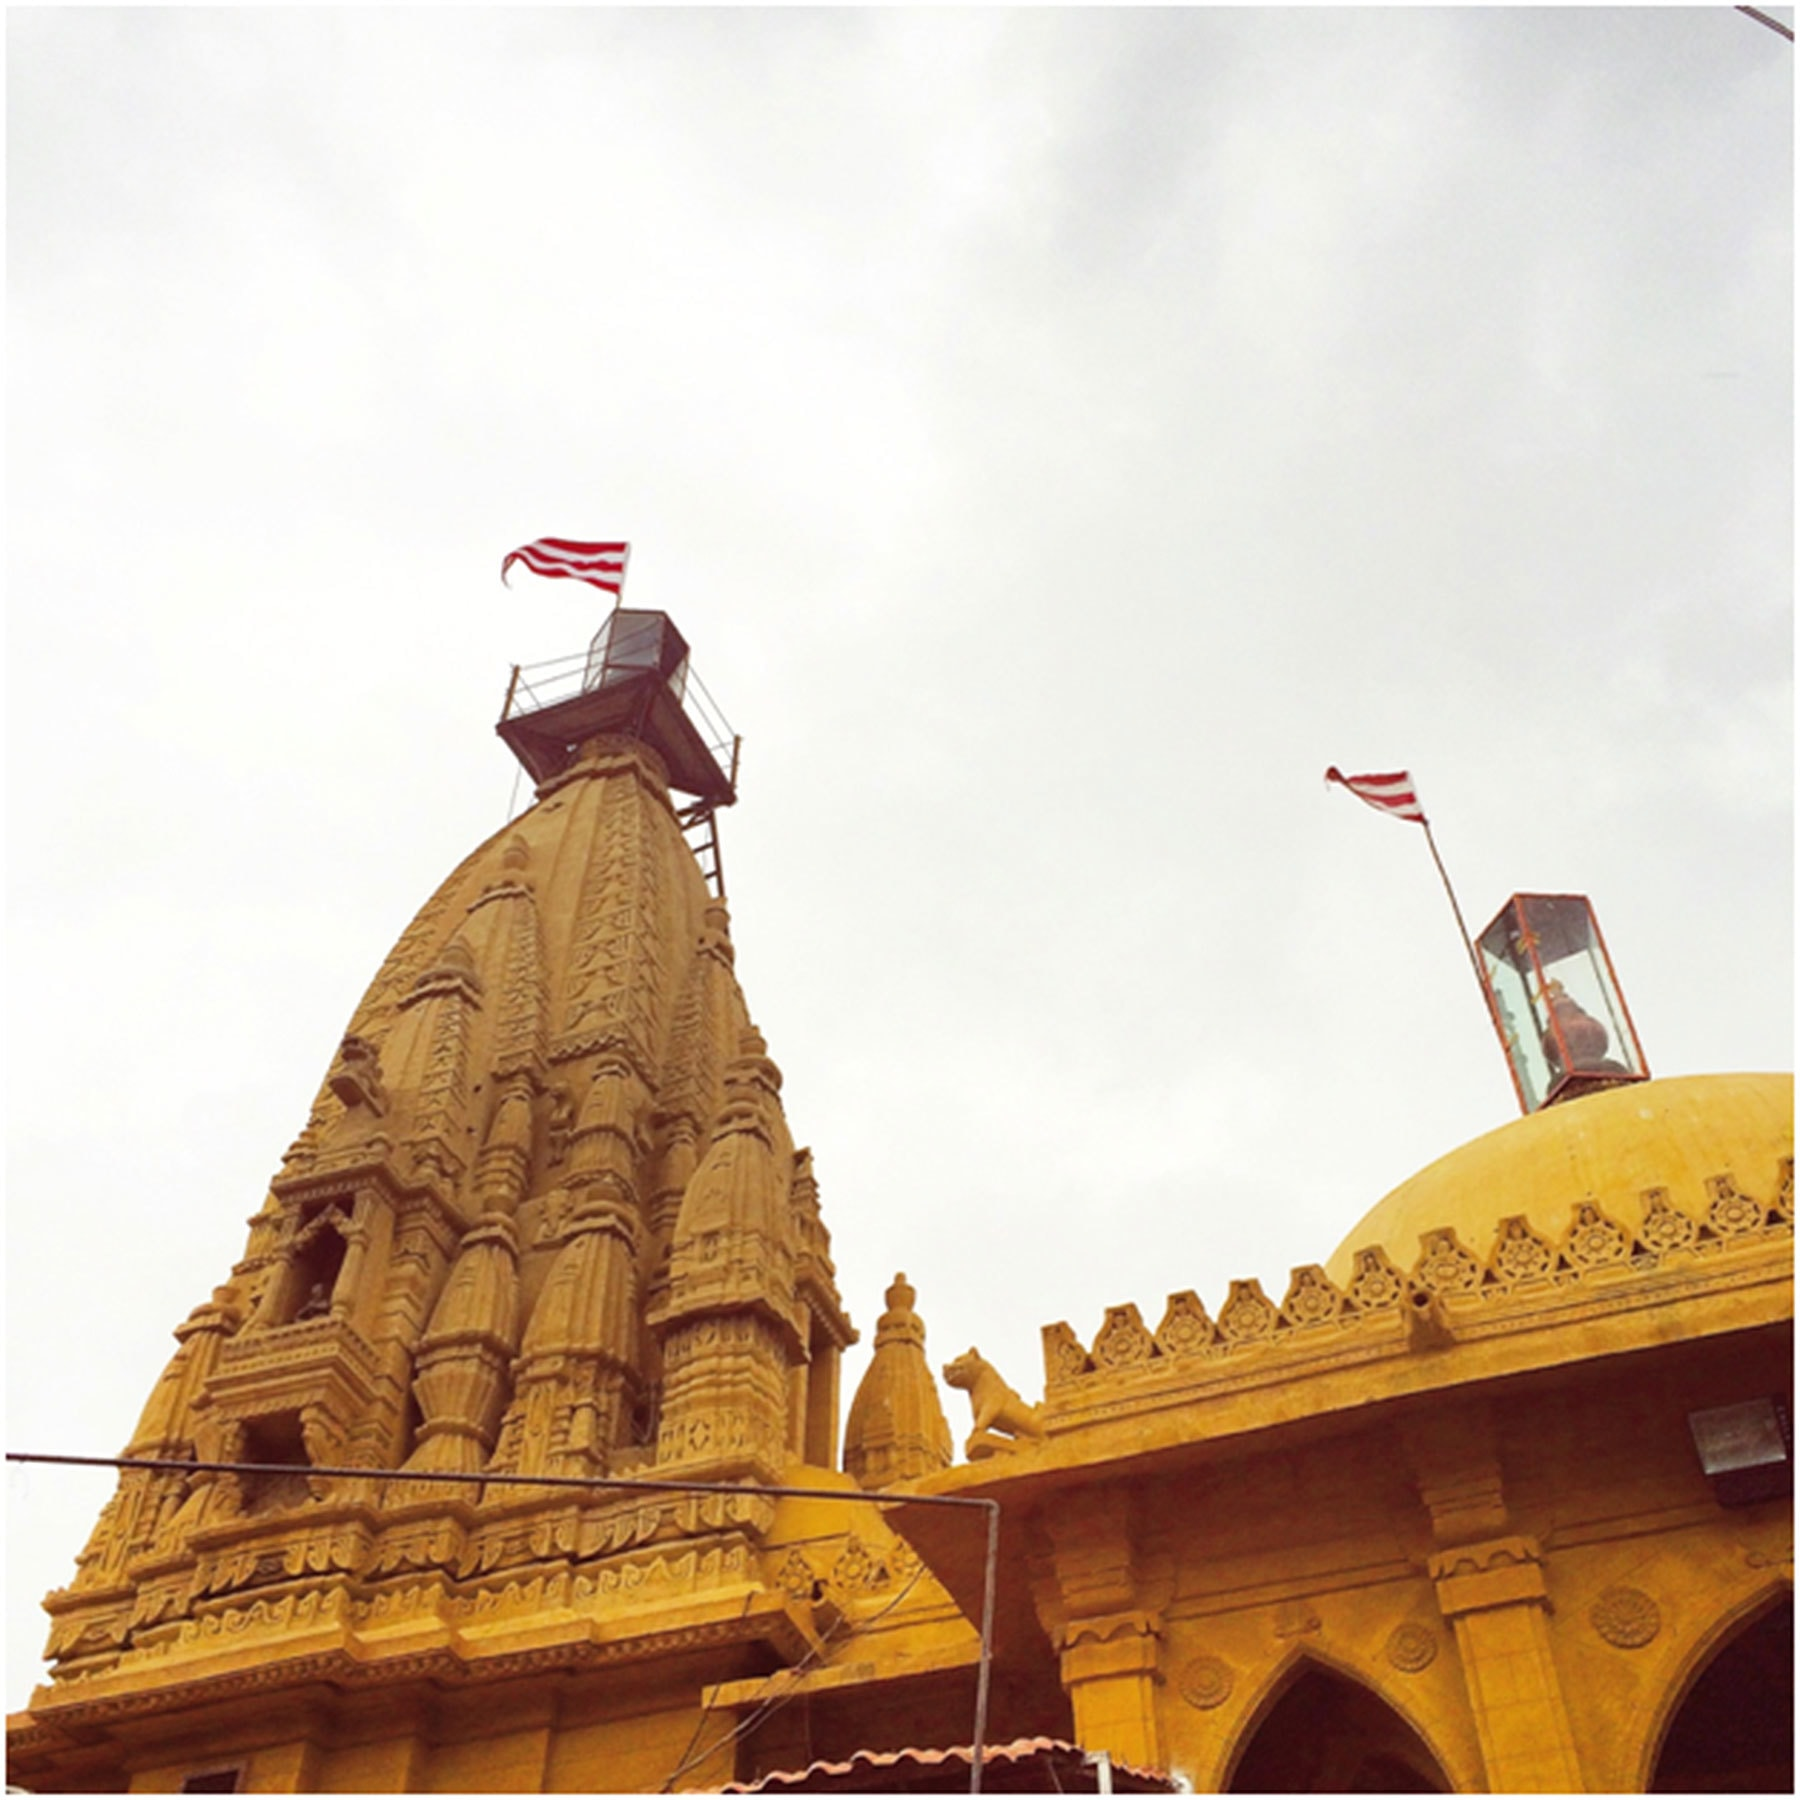 The Swaminarayan Hindu Temple, also known as the Lighthouse Mandir.